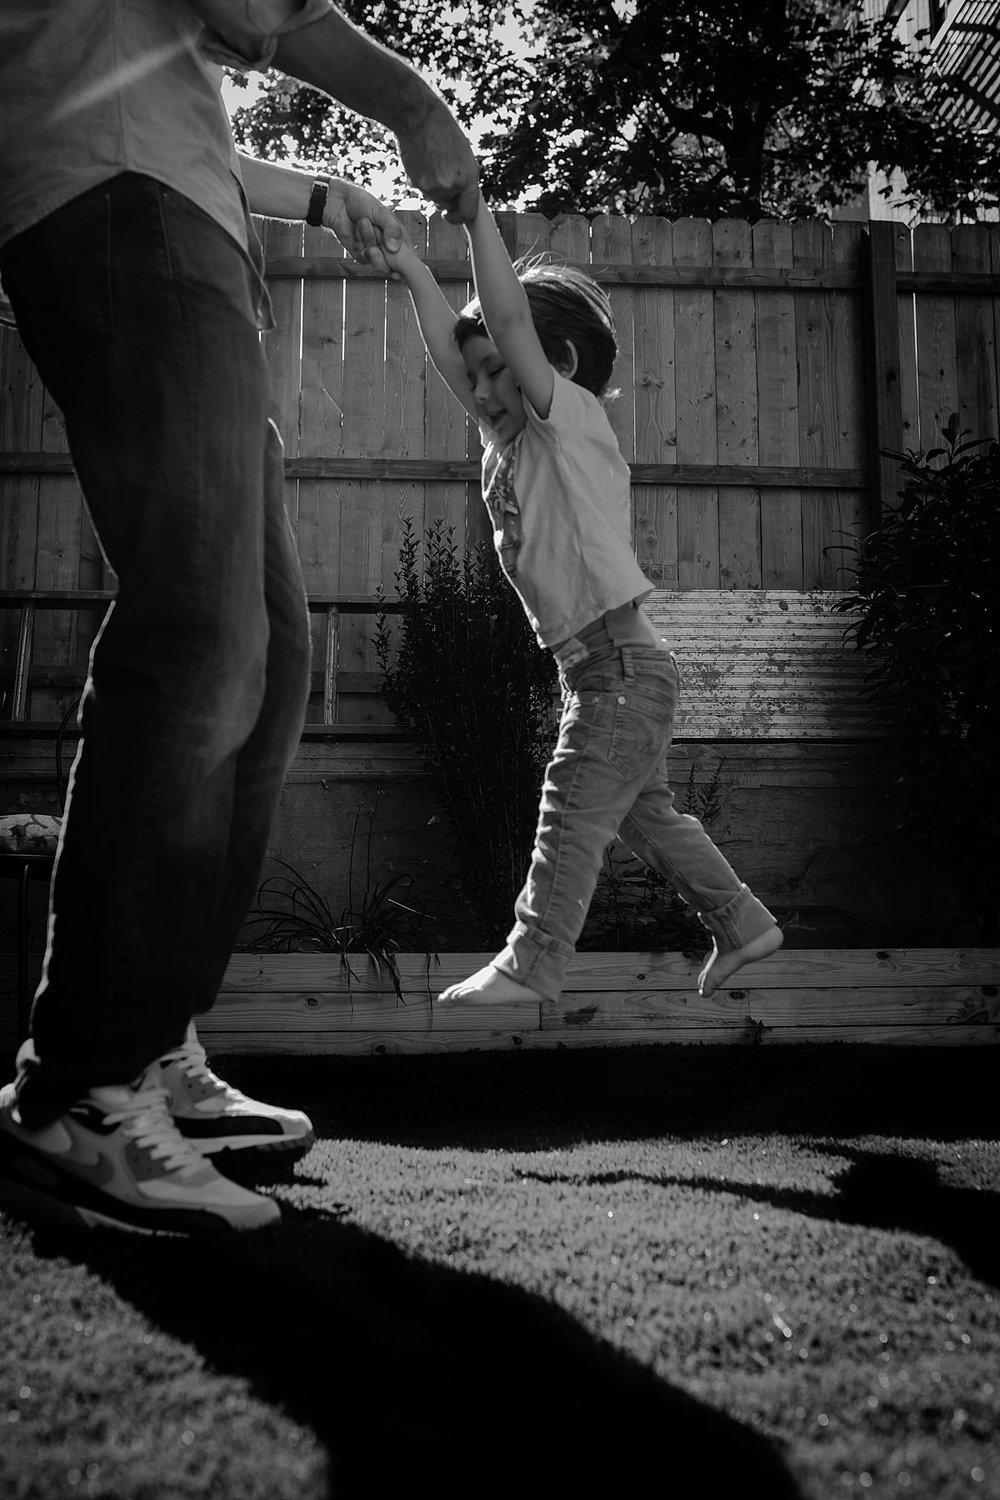 dad swinging son around outside in backyard during fun filled family lifestyle session with krystil mcdowall photography